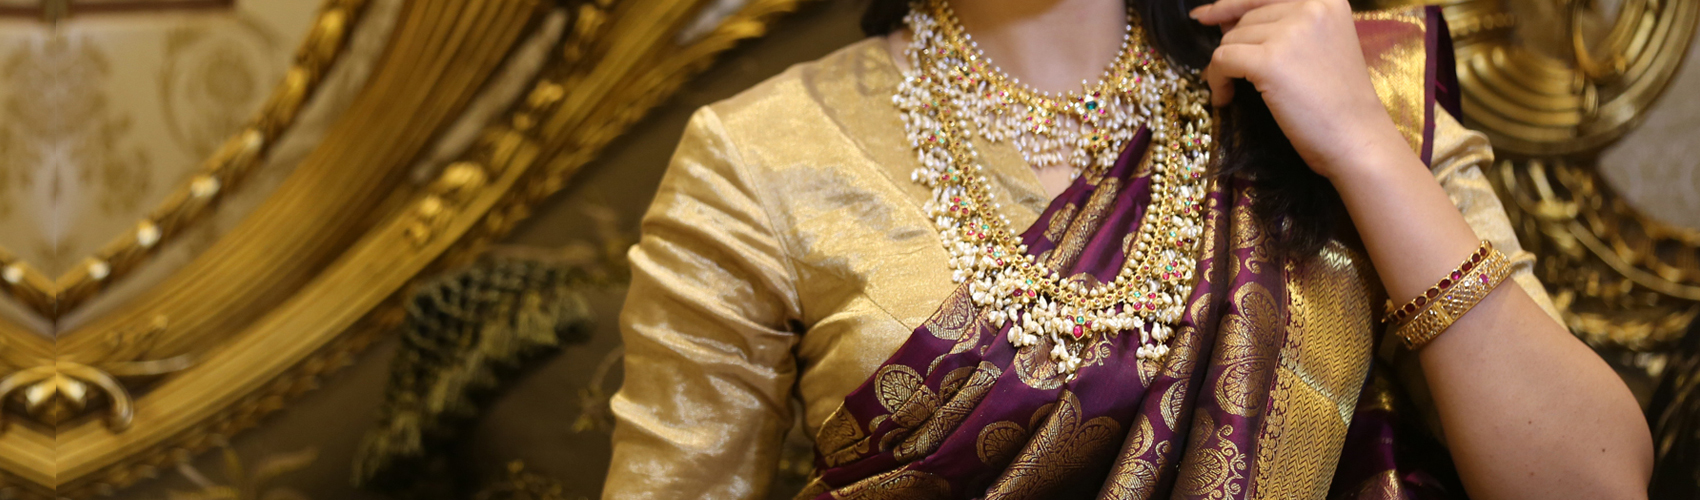 Gold Jewellery Shops in Hyderabad | Diamond Jewellery Shops